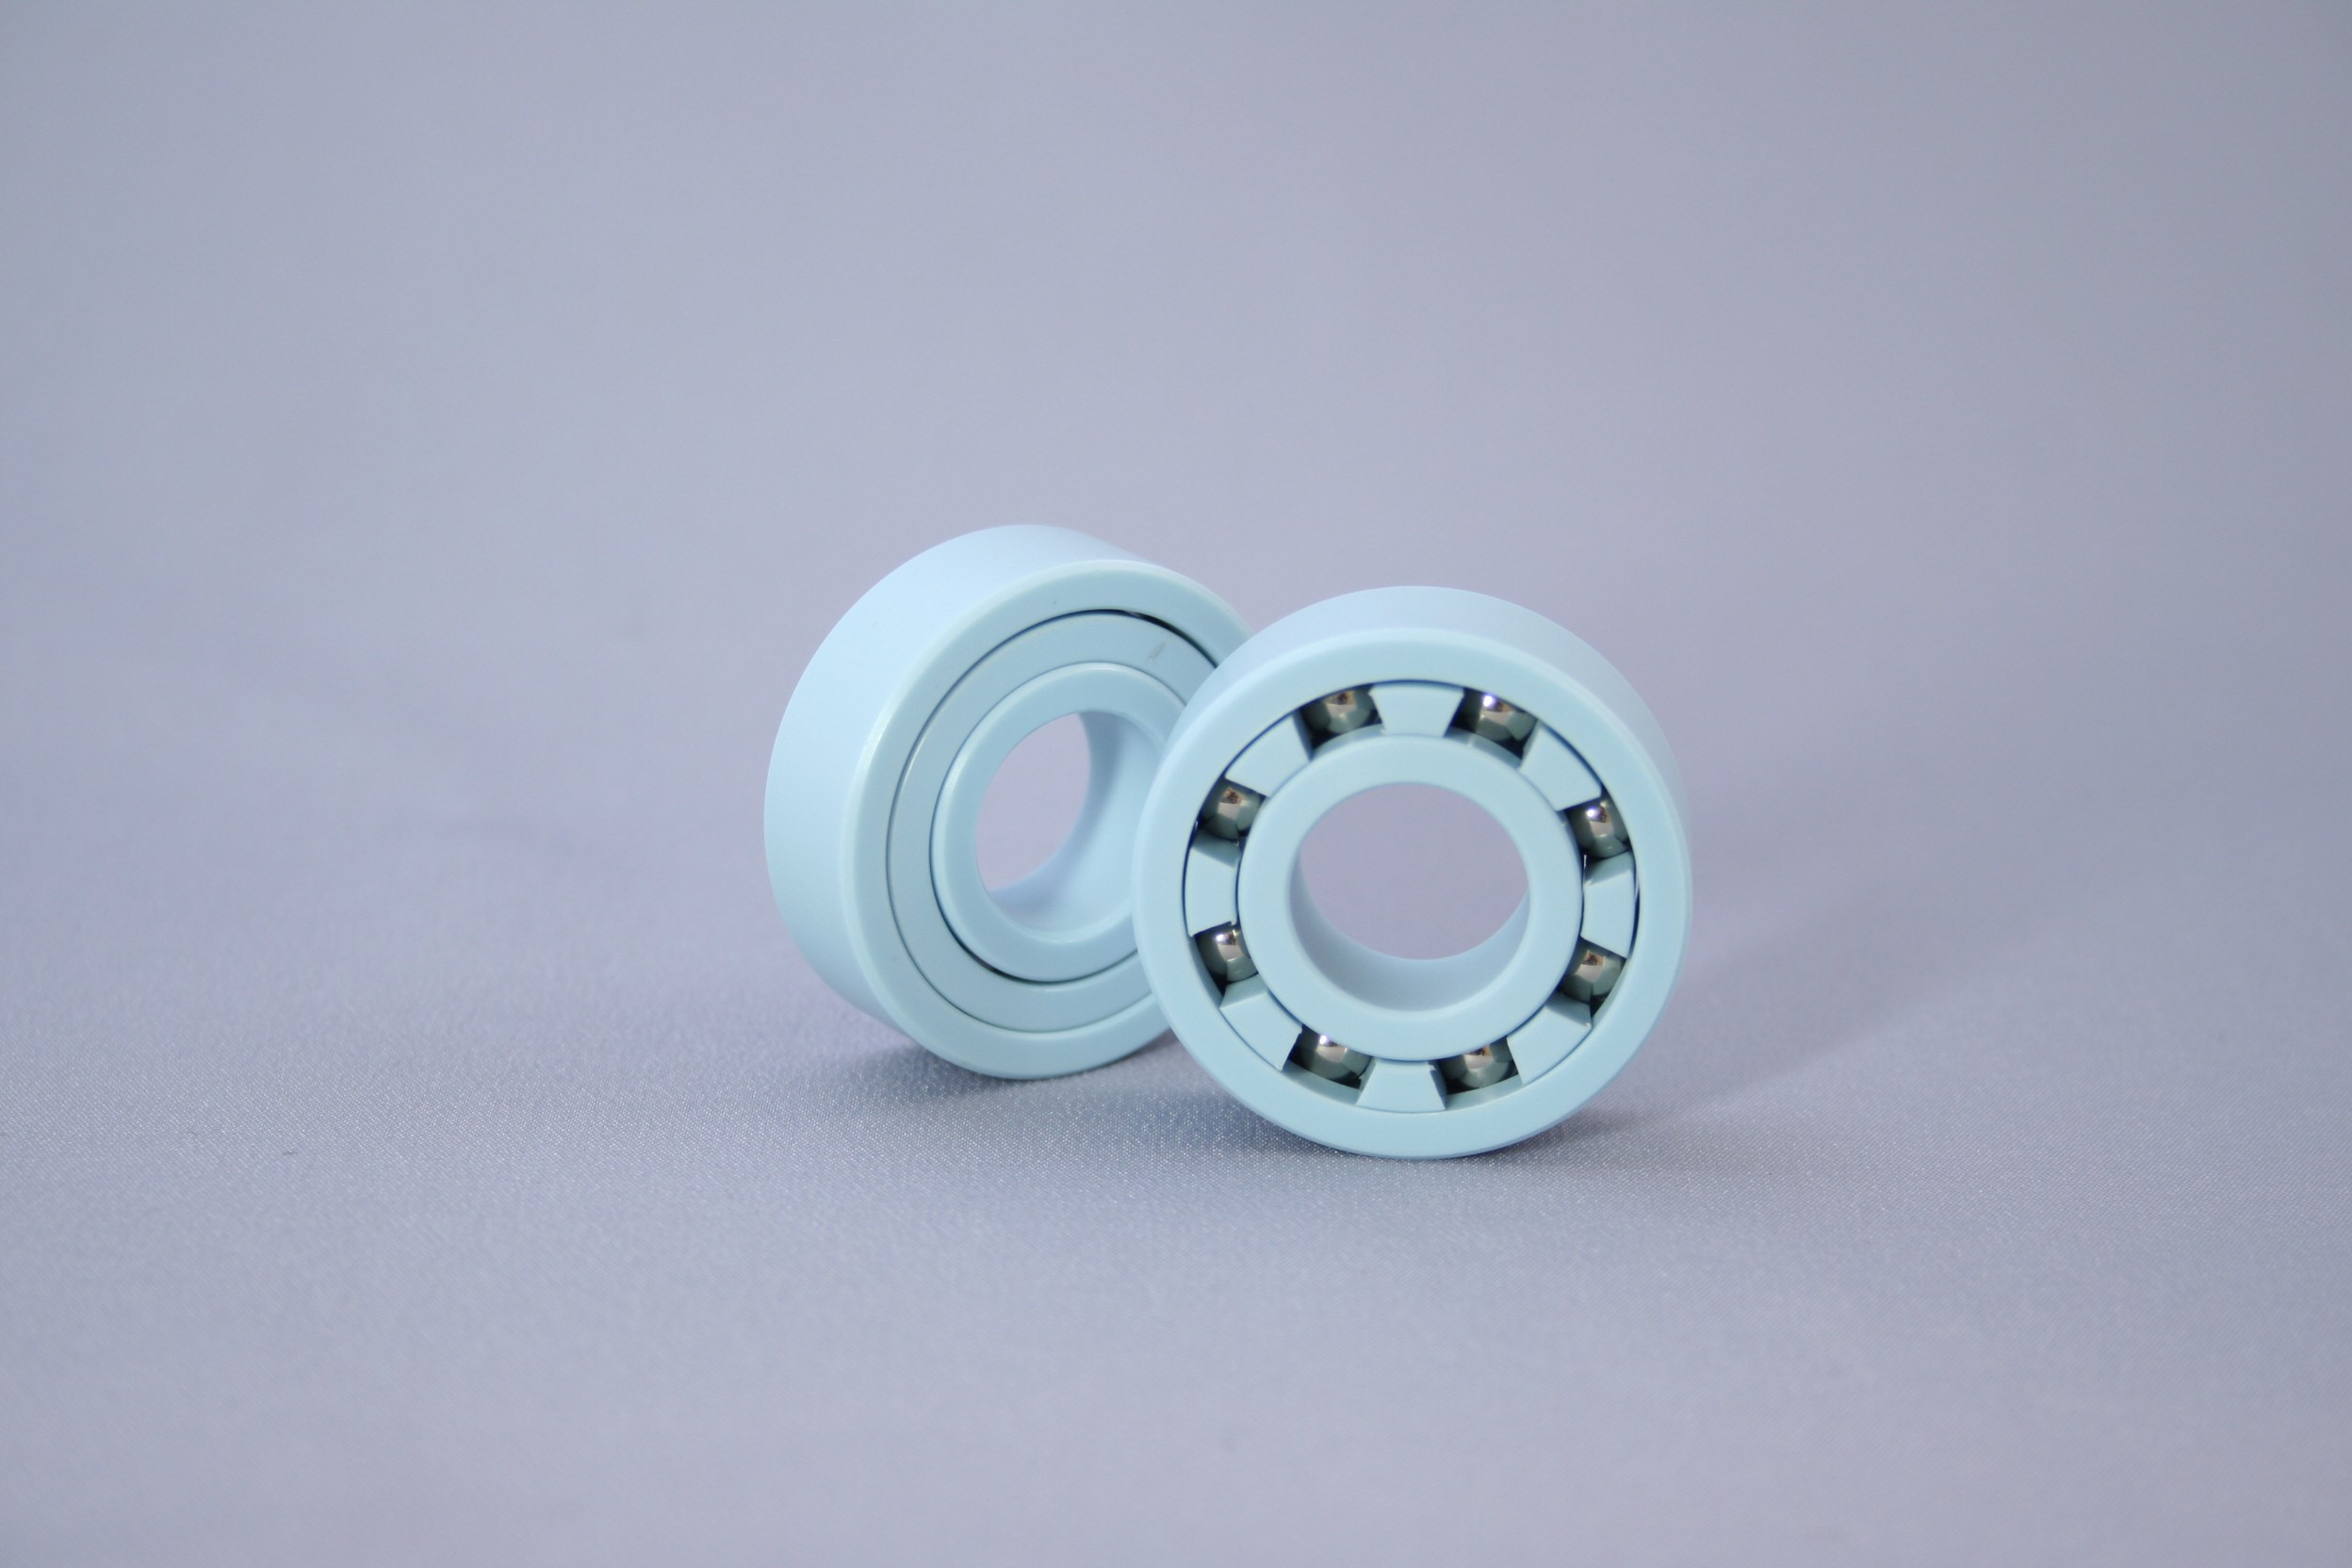 Plastic bearings used in a variety of applications.